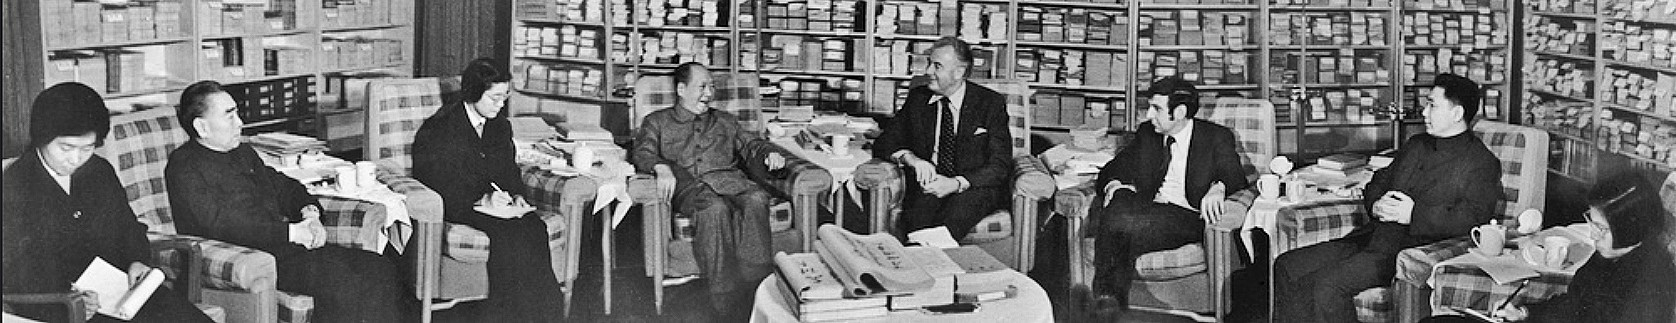 Whitlam meets Chinese premier Chairman Mao Zedong